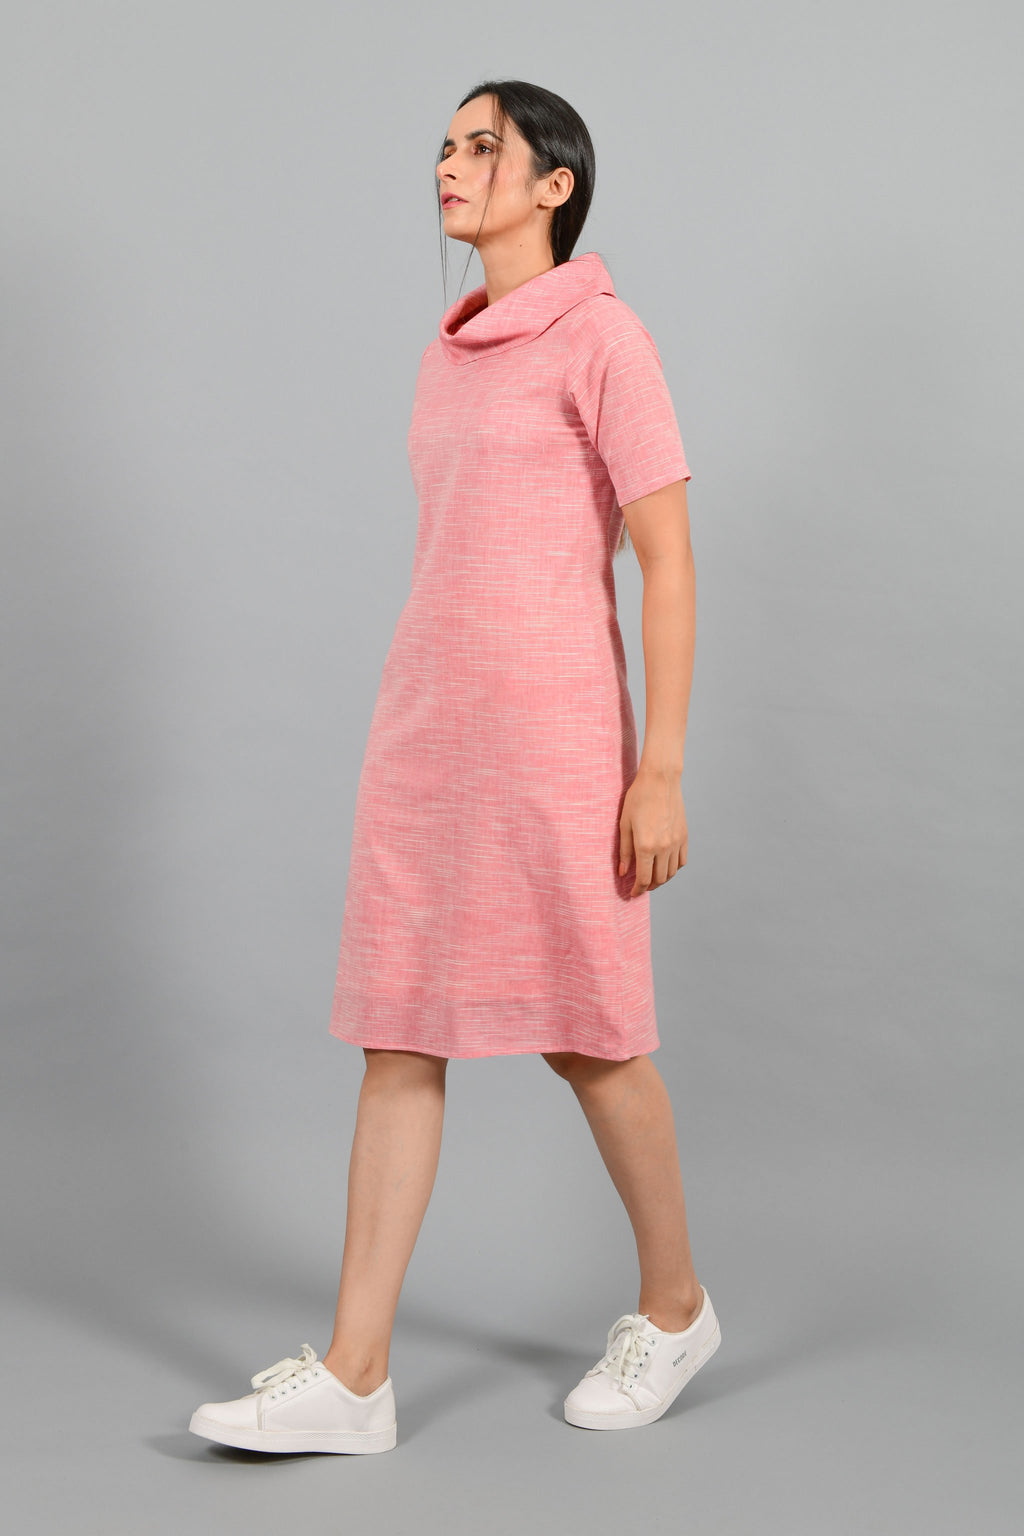 Side pose of an Indian female womenswear fashion model in a Pink and White space dyed cowl neck, elbow sleeve handspun and handwoven khadi cotton dress by Cotton Rack.